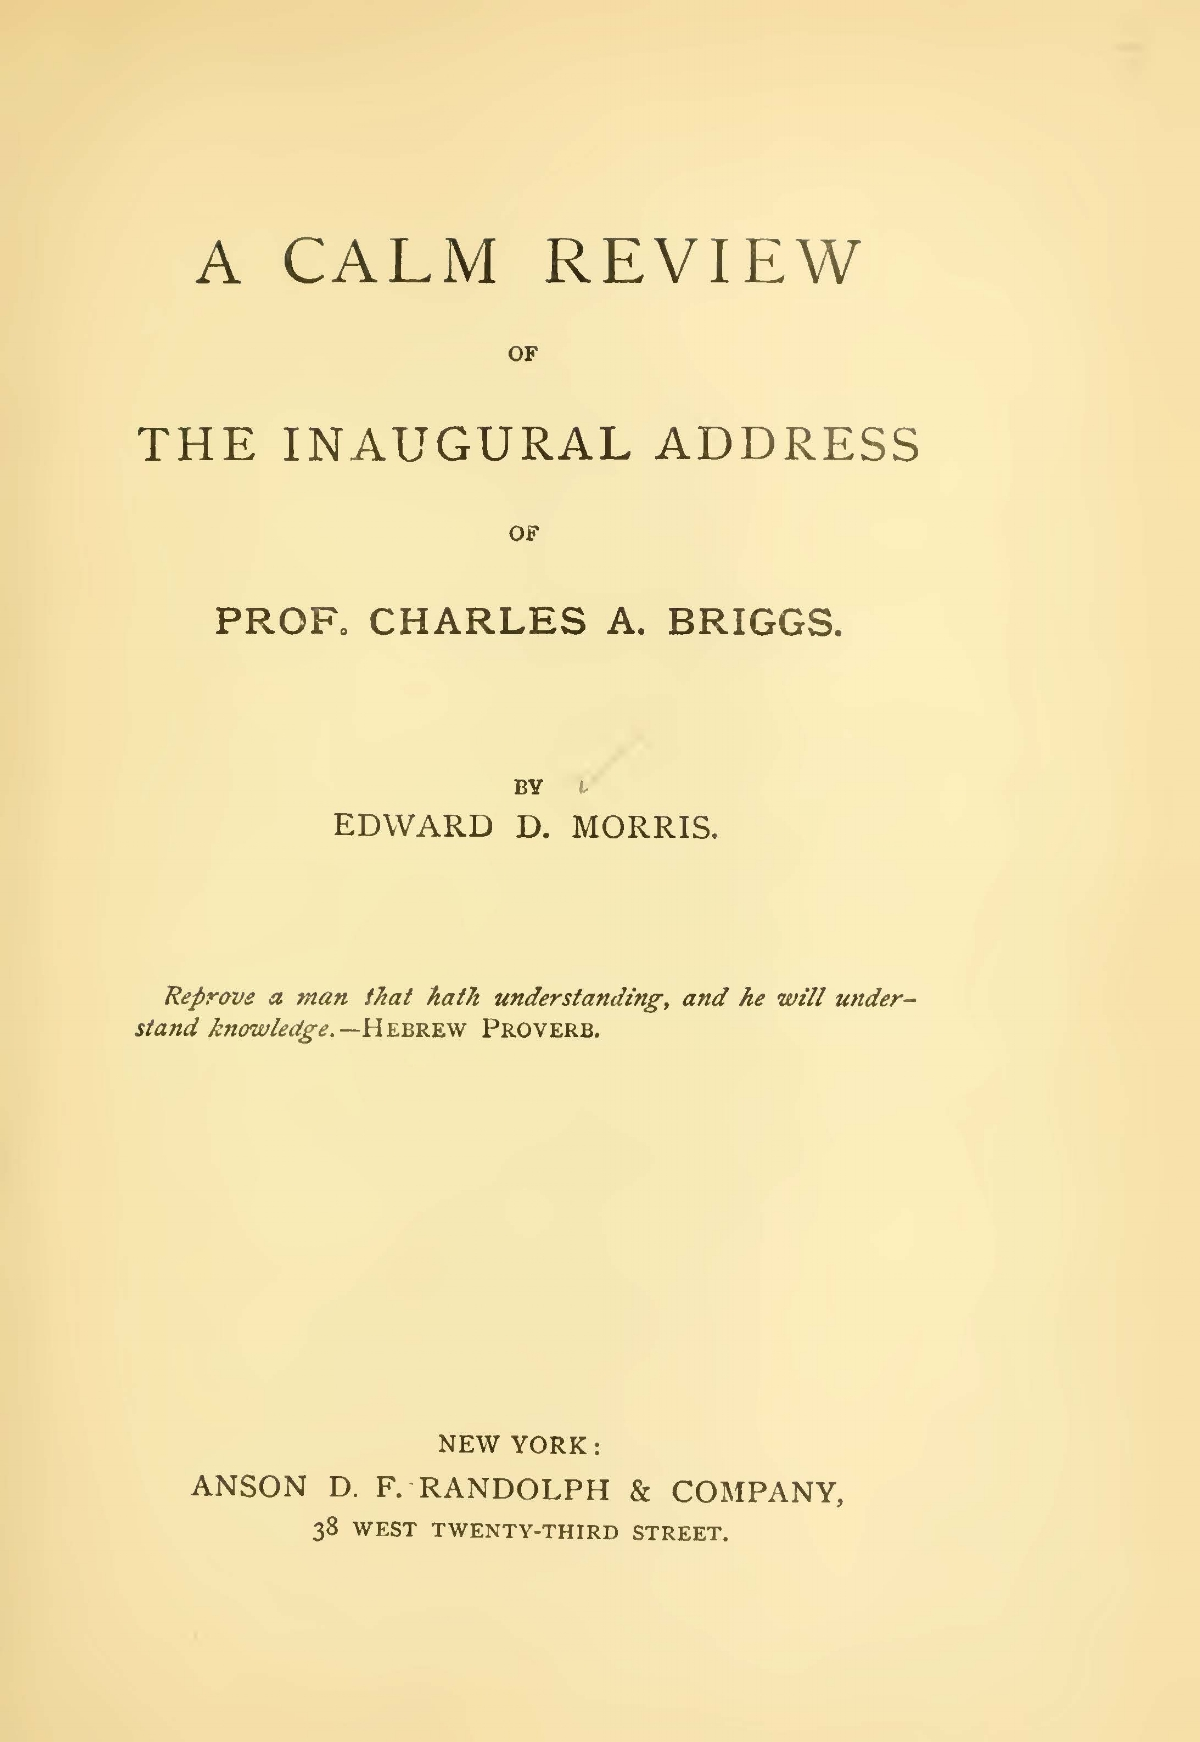 Morris, Edward Dafydd, A Calm Review of the Inaugural Address of Prof. Charles A. Briggs Title Page.jpg